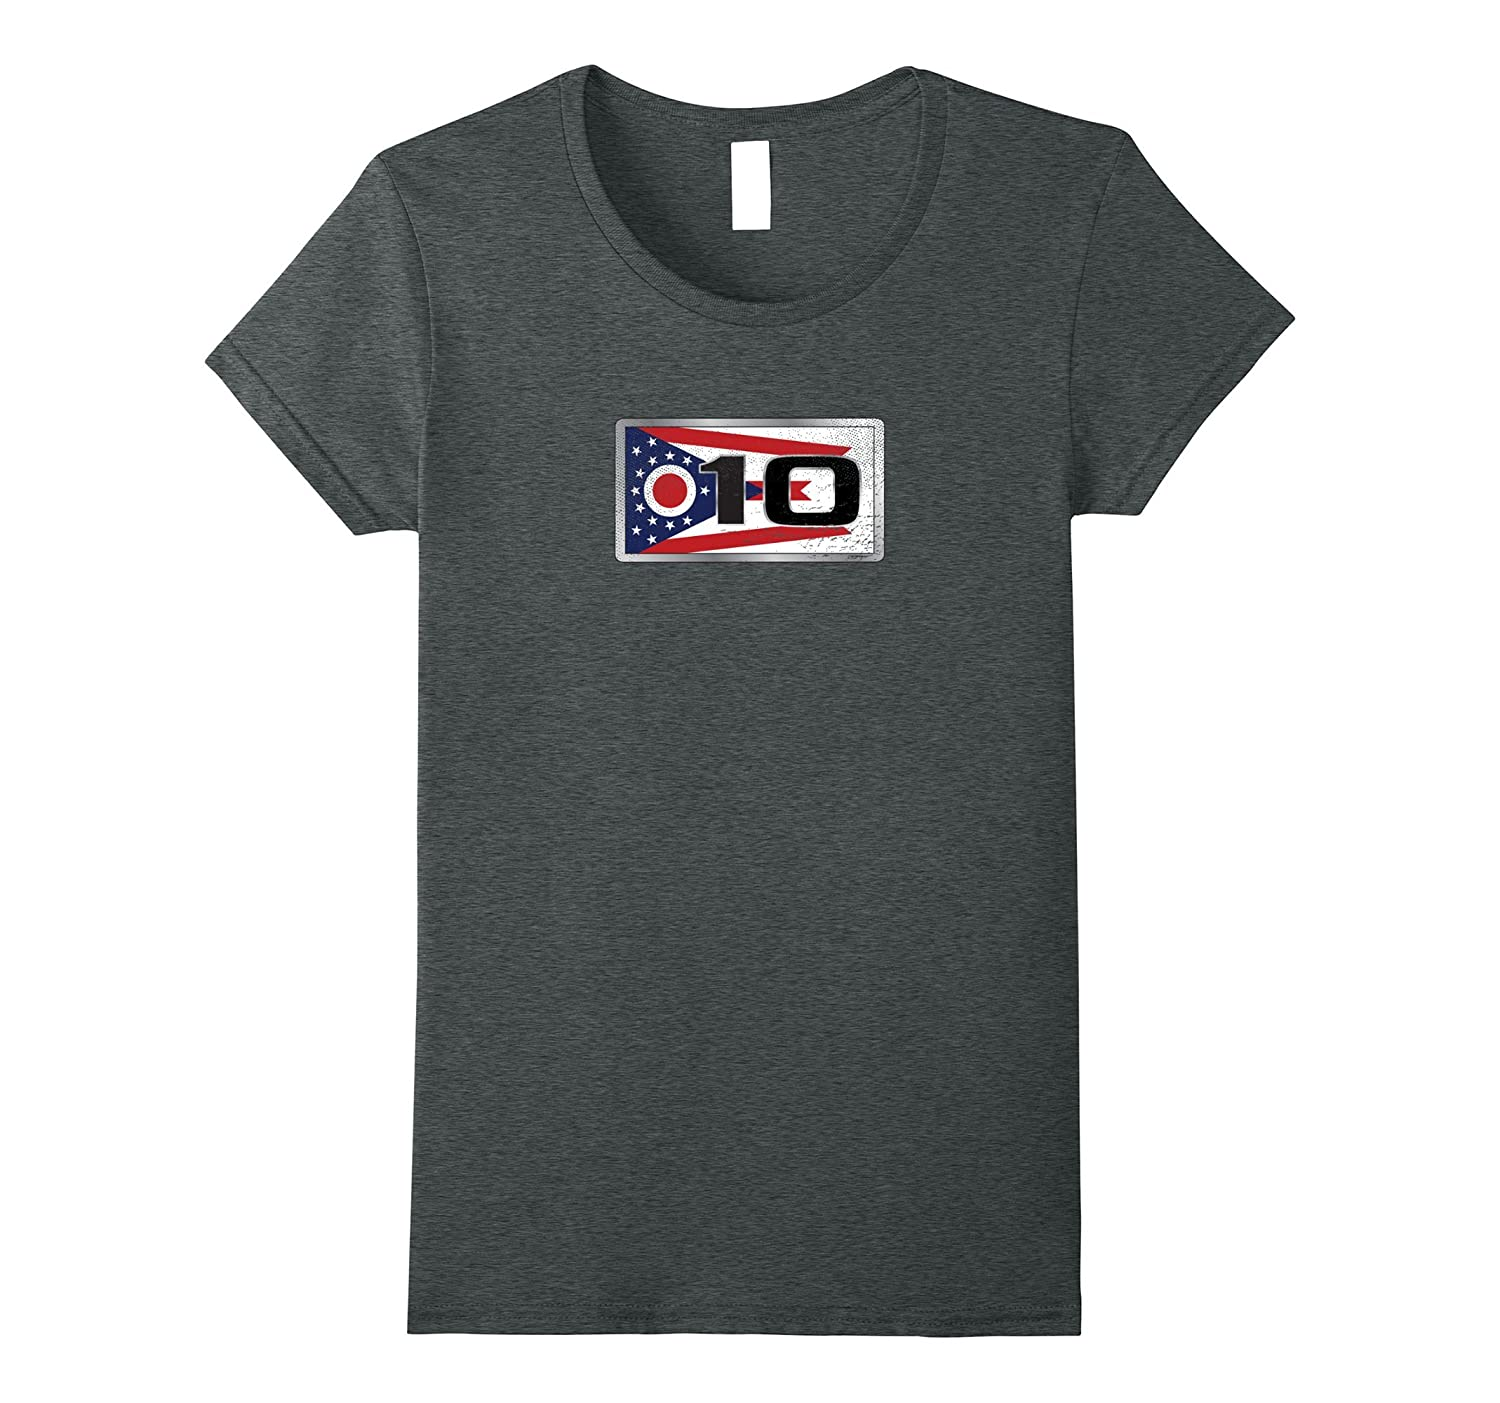 C10 State of Mind – Ohio – Traditional Tshirt